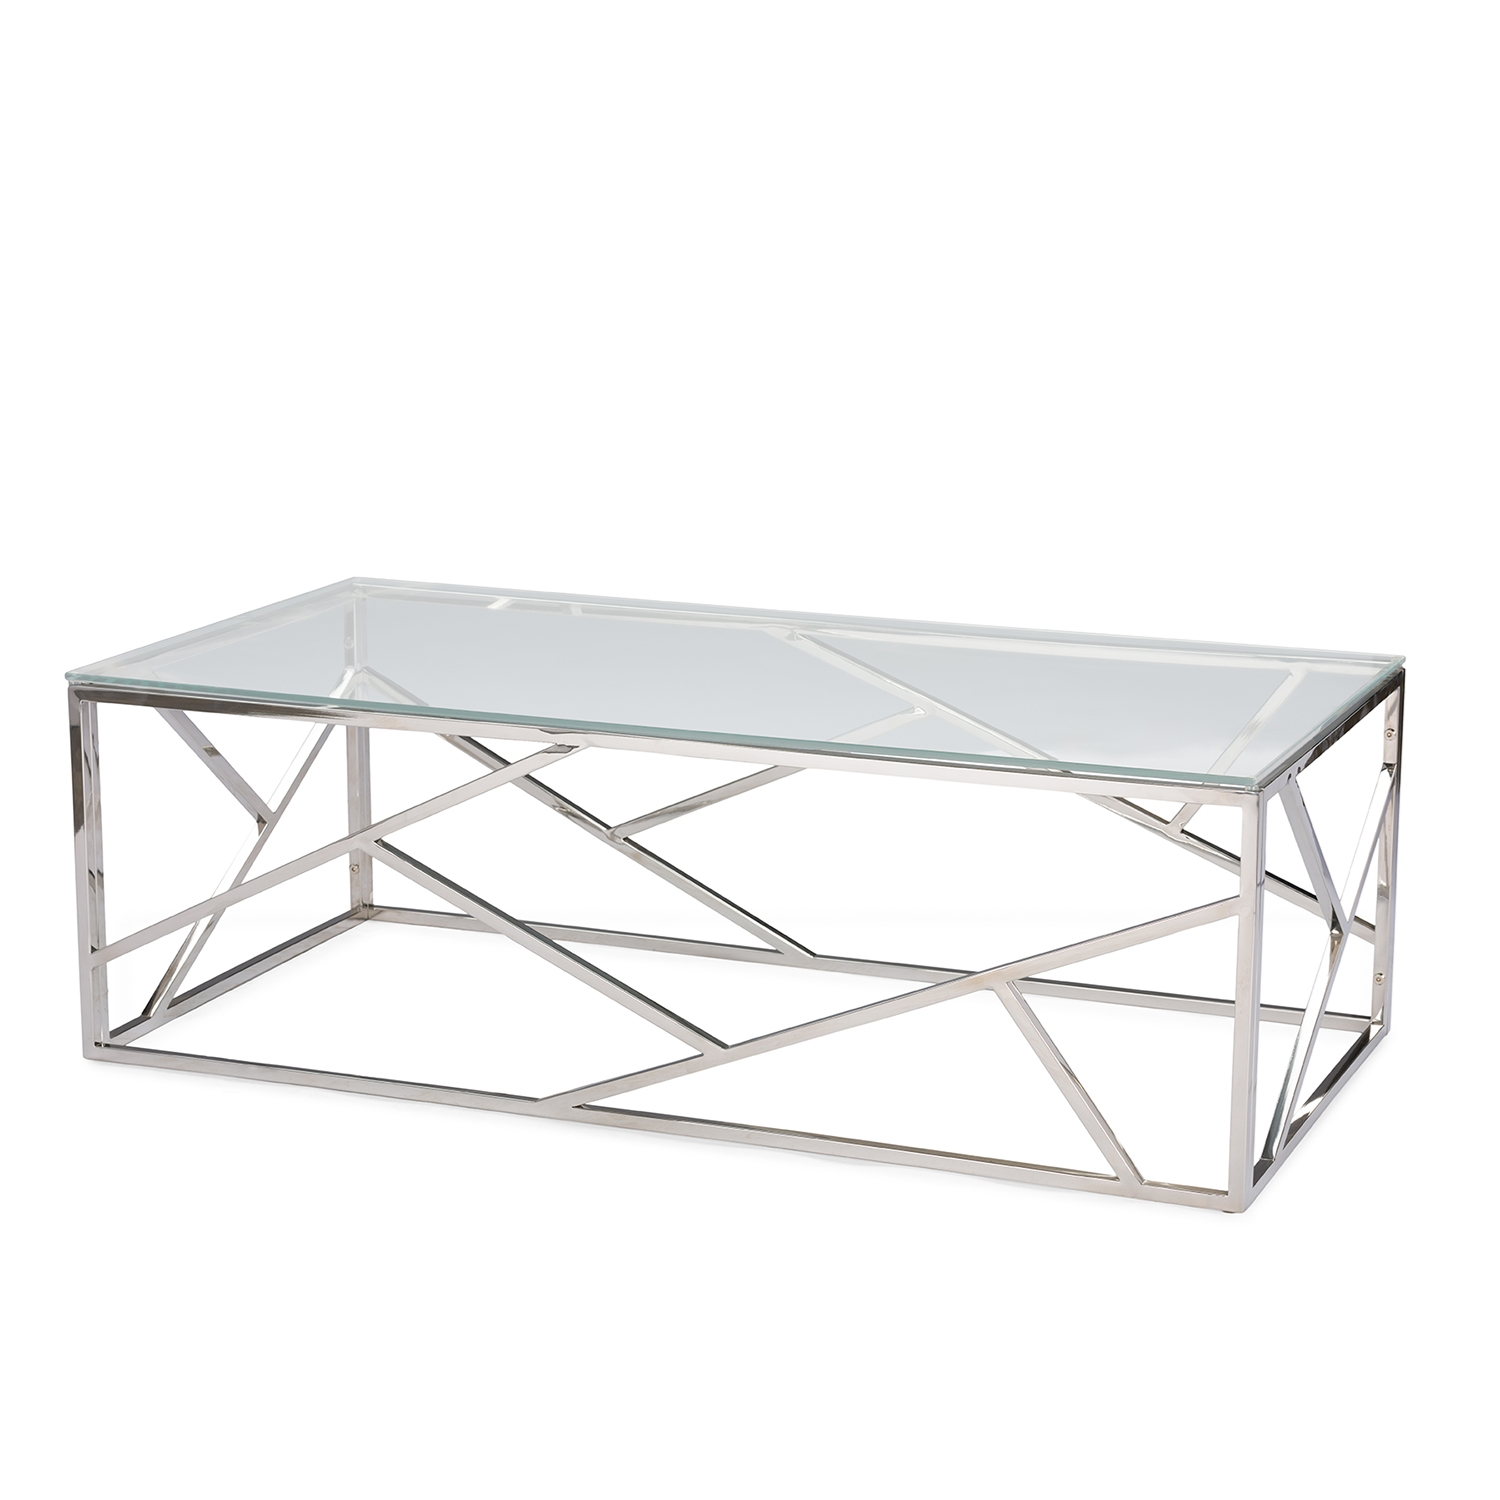 ... Baxton Studio Fiona Modern And Contemporary Stainless Steel Coffee Table  With Tempered Glass Top   GY ...